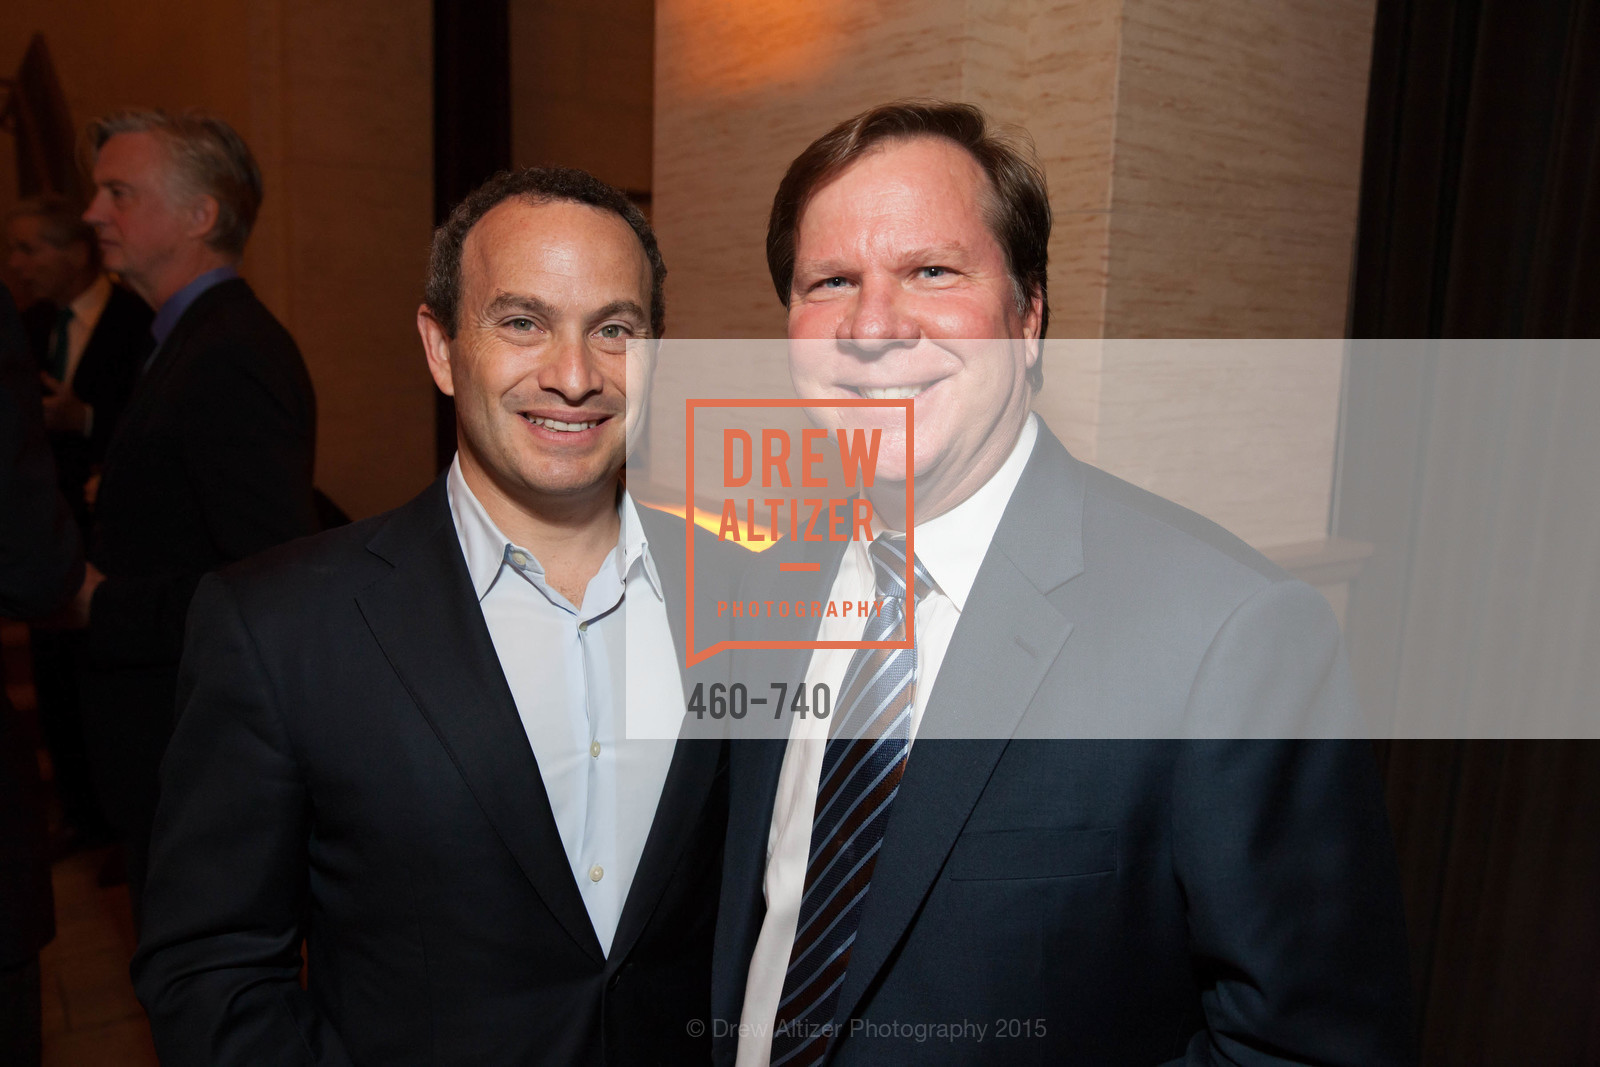 Evan Marwell, Hank Miller, Aspire Annual College for Certain Dinne, US, May 21st, 2015,Drew Altizer, Drew Altizer Photography, full-service agency, private events, San Francisco photographer, photographer california